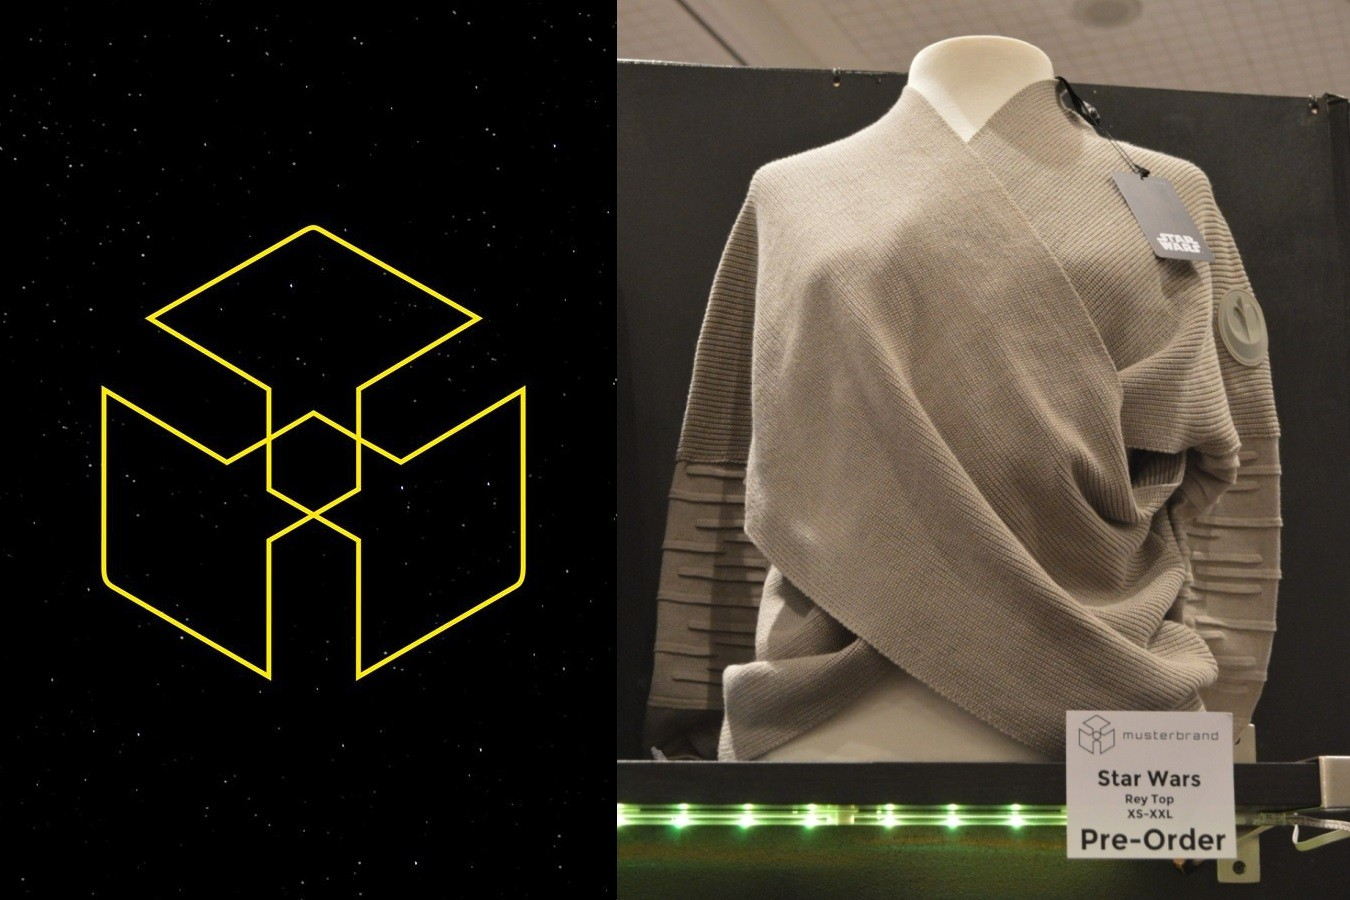 New Rey inspired top from Musterbrand!